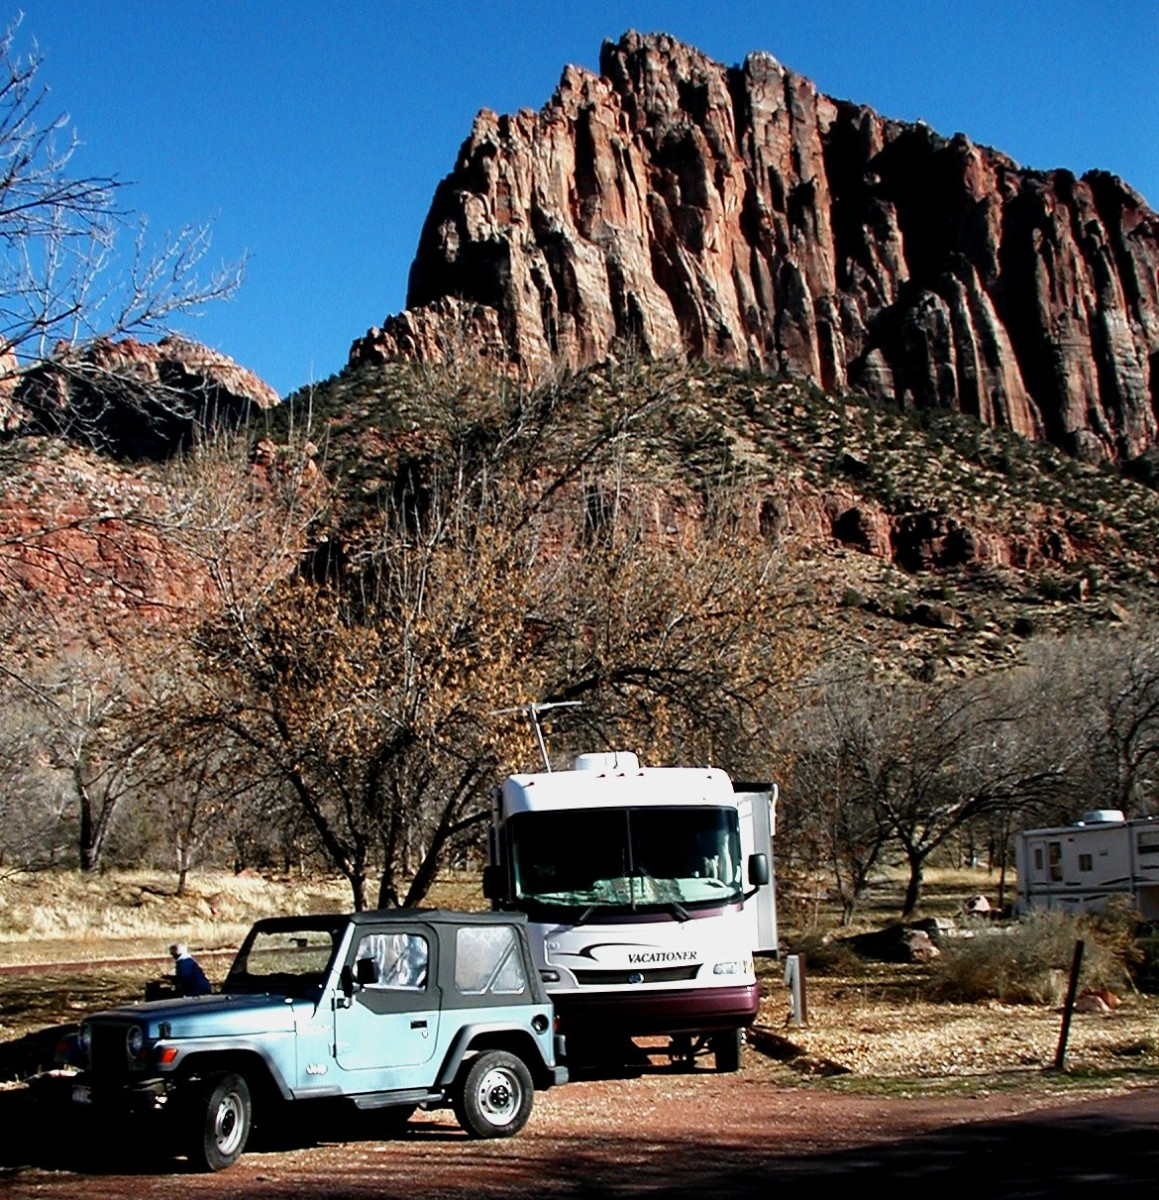 A perfect off-the-grid campsite at Zion National Park with beautiful rock formations in the background.